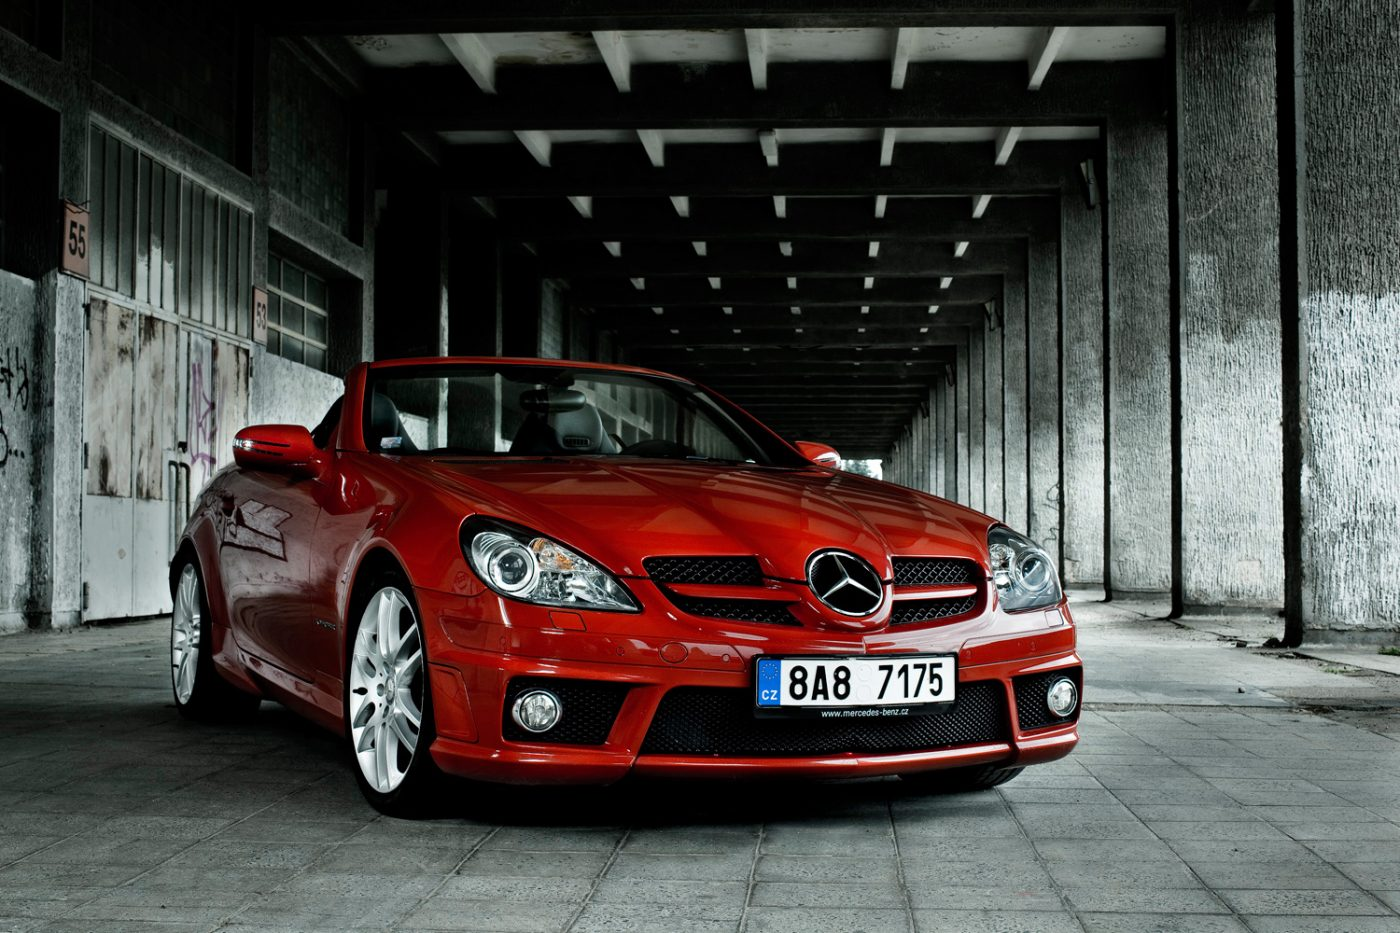 product photography of Mercedes Benz car in exterior